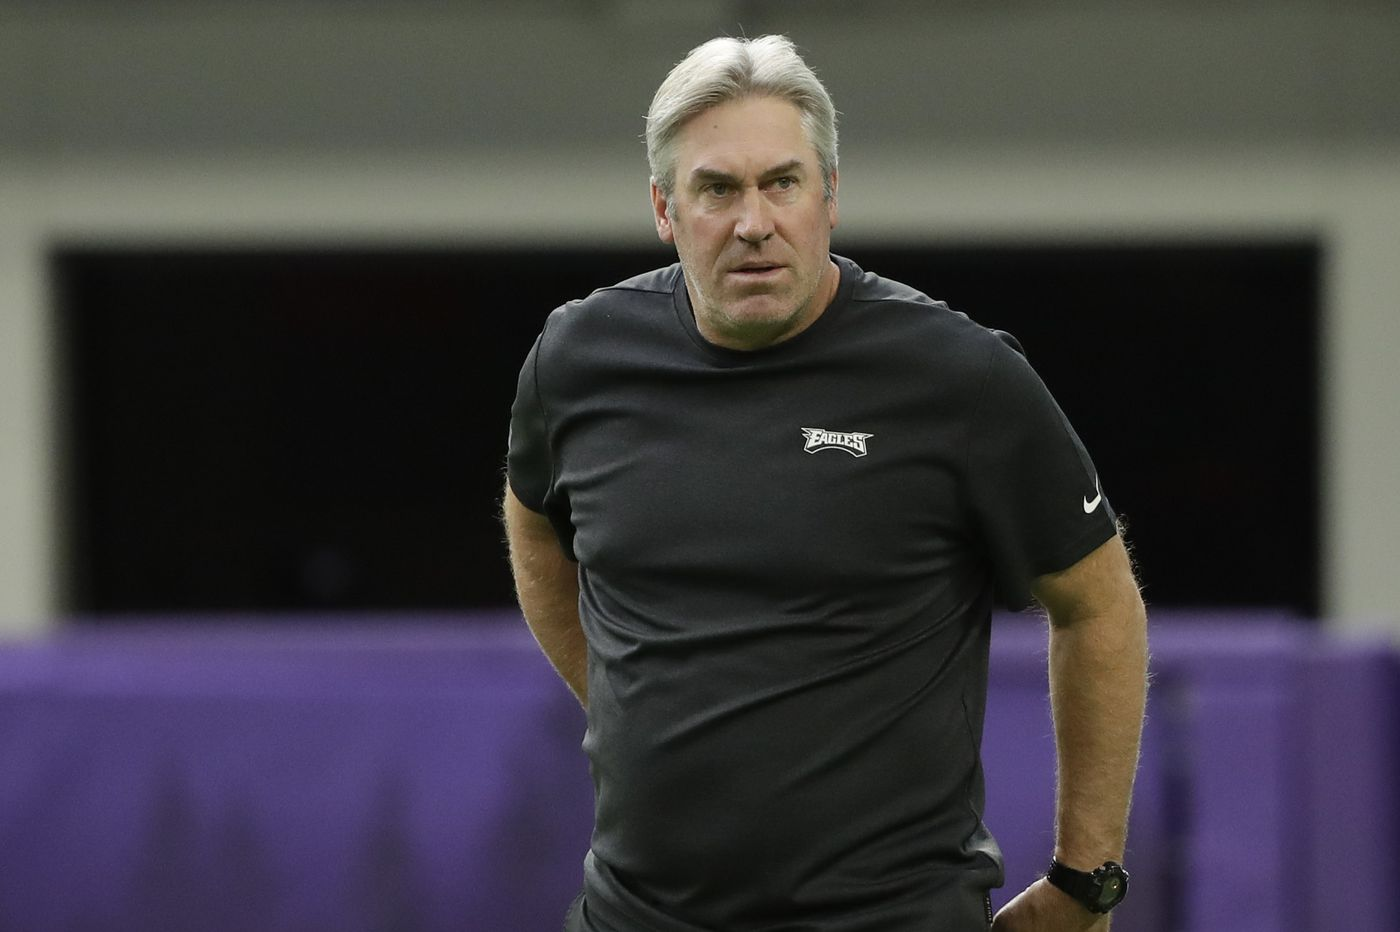 Doug Pederson: Eagles will beat the Cowboys on Sunday